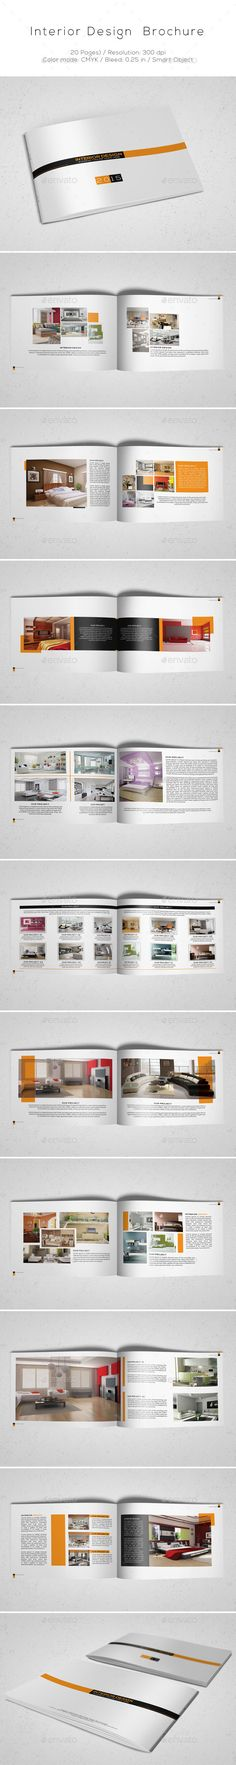 "Interior Design Brochure Template <a class=""pintag"" href=""/explore/design"" title=""#design explore Pinterest"">#design</a> Download: <a href=""http://graphicriver.net/item/interior-design-brochure-/9854911?ref=ksioks"" rel=""nofollow"" target=""_blank"">graphicriver.net/...</a>"